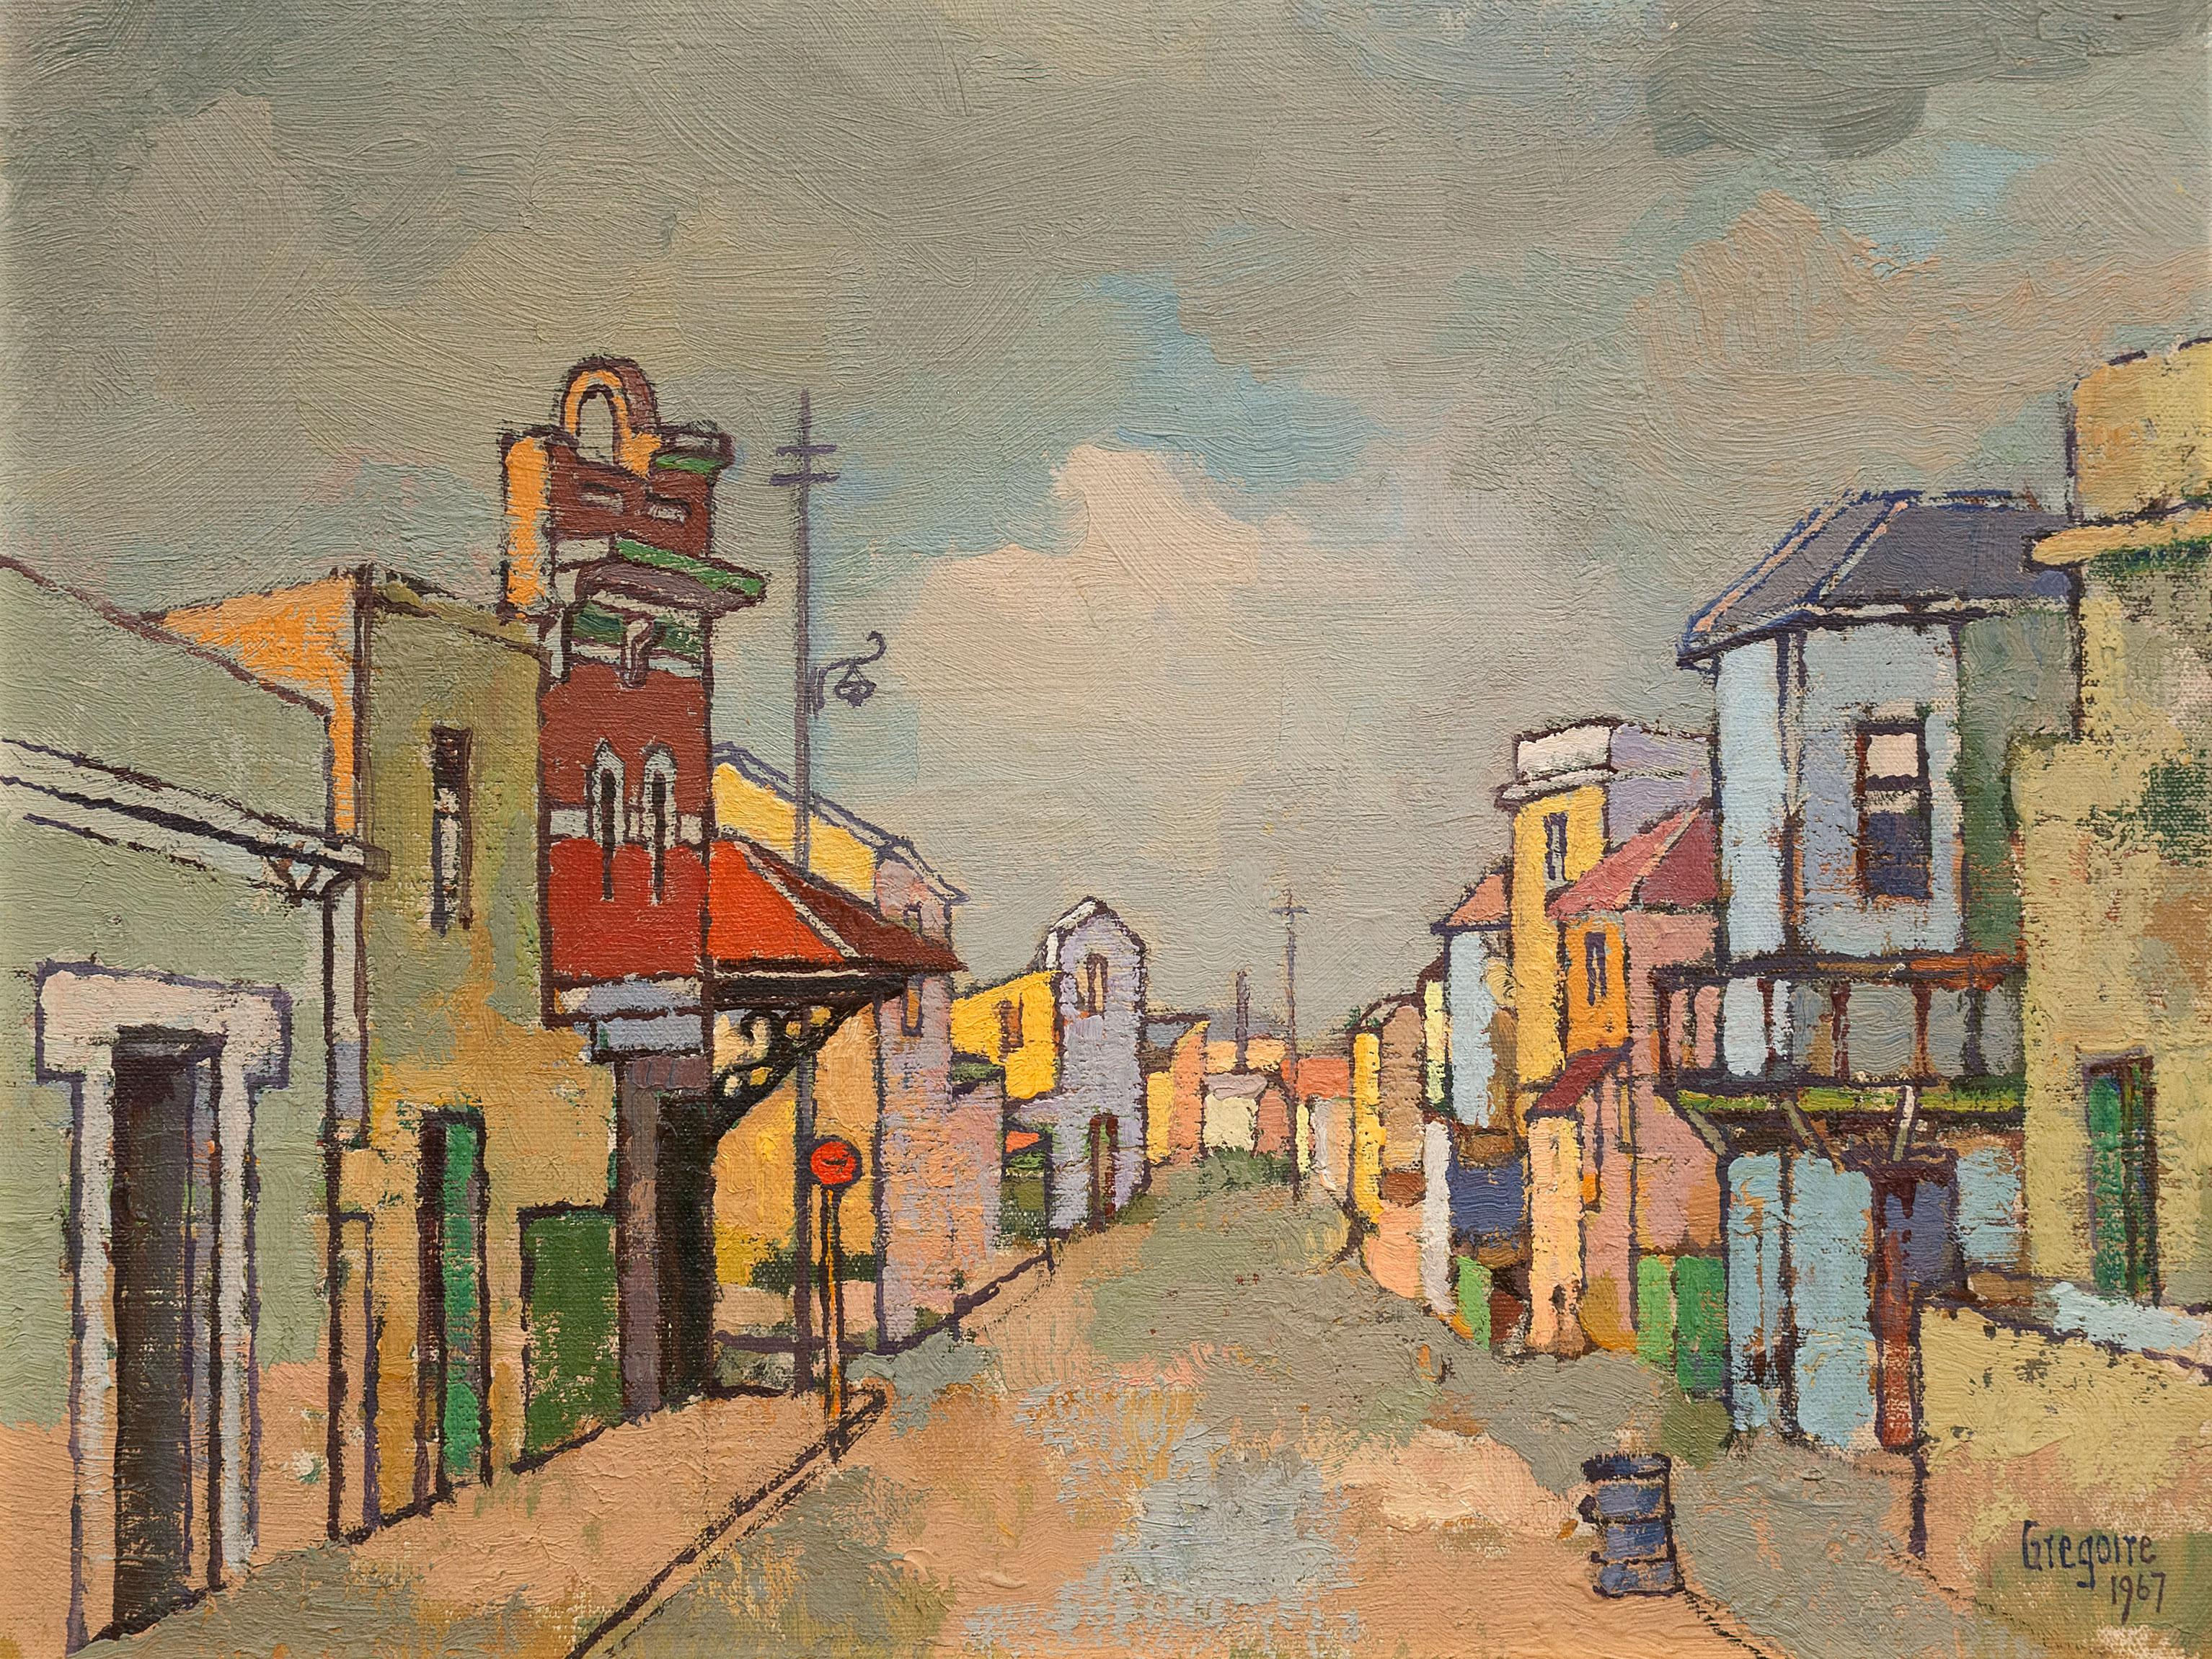 Gregoire Boonzaier (SA 1909 - 2005) Oil, District Six, Signed & Dated 1967, 40 x 50